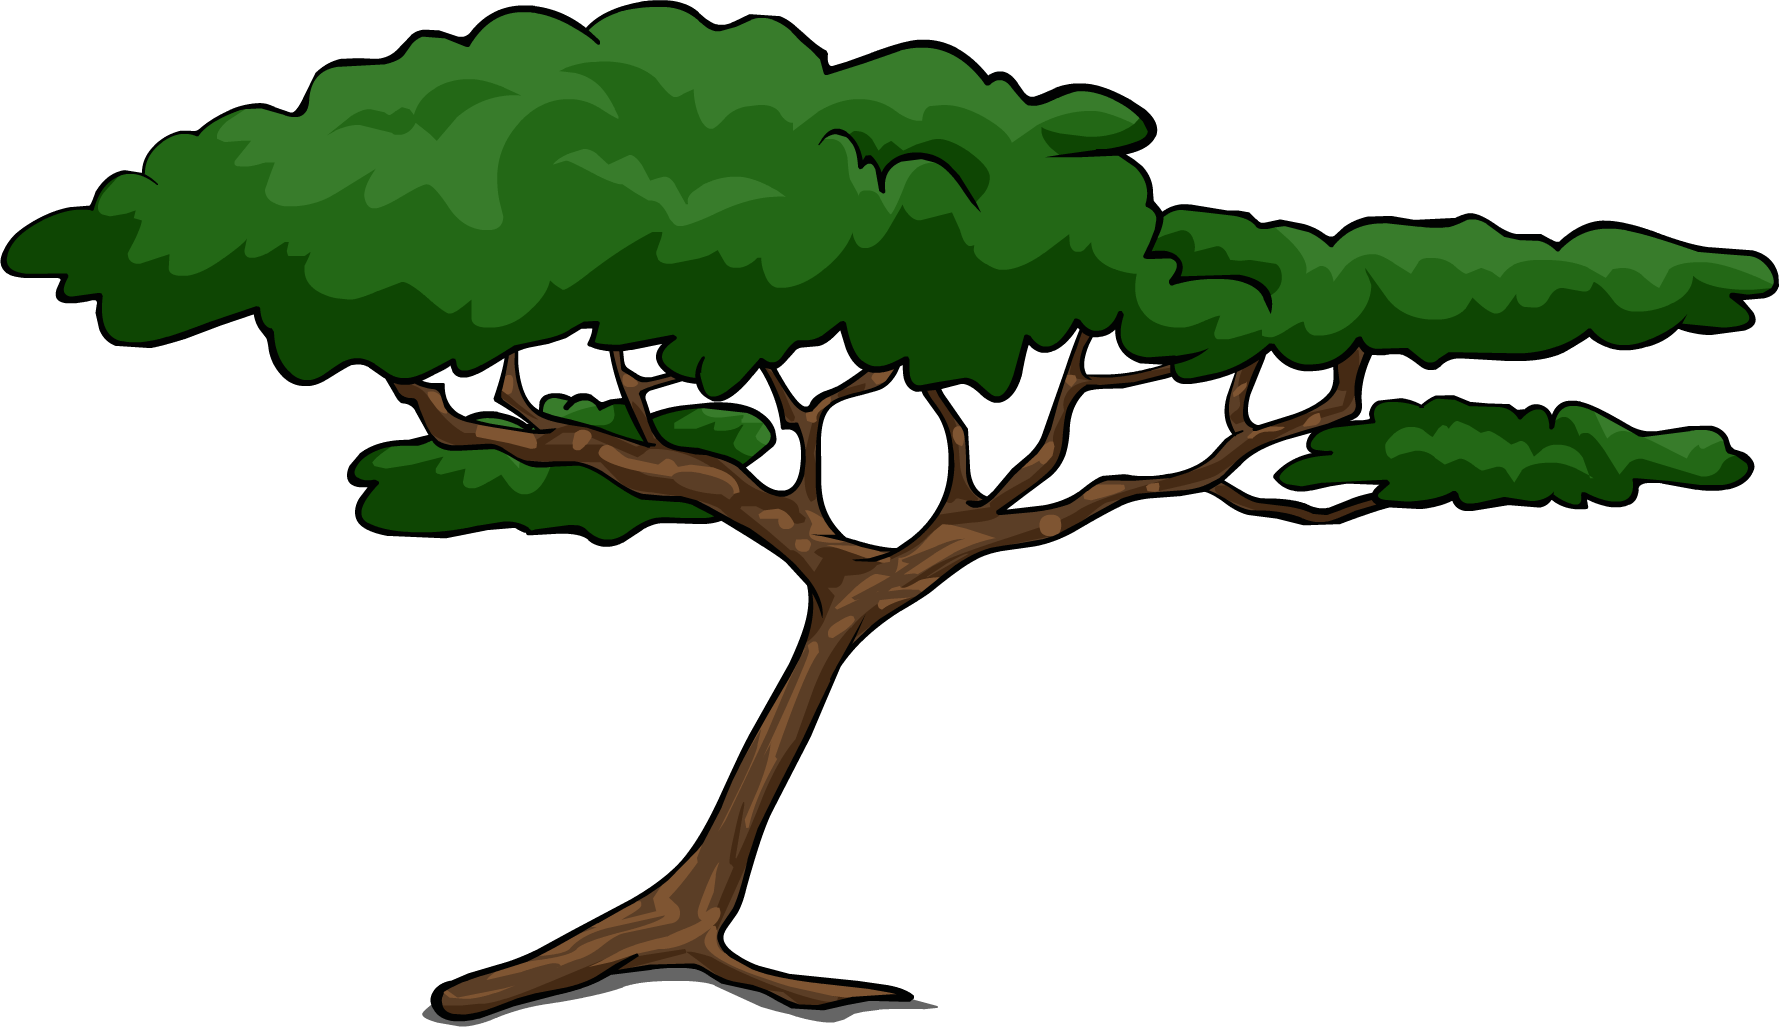 svg black and white Jungle Tree Clipart at GetDrawings